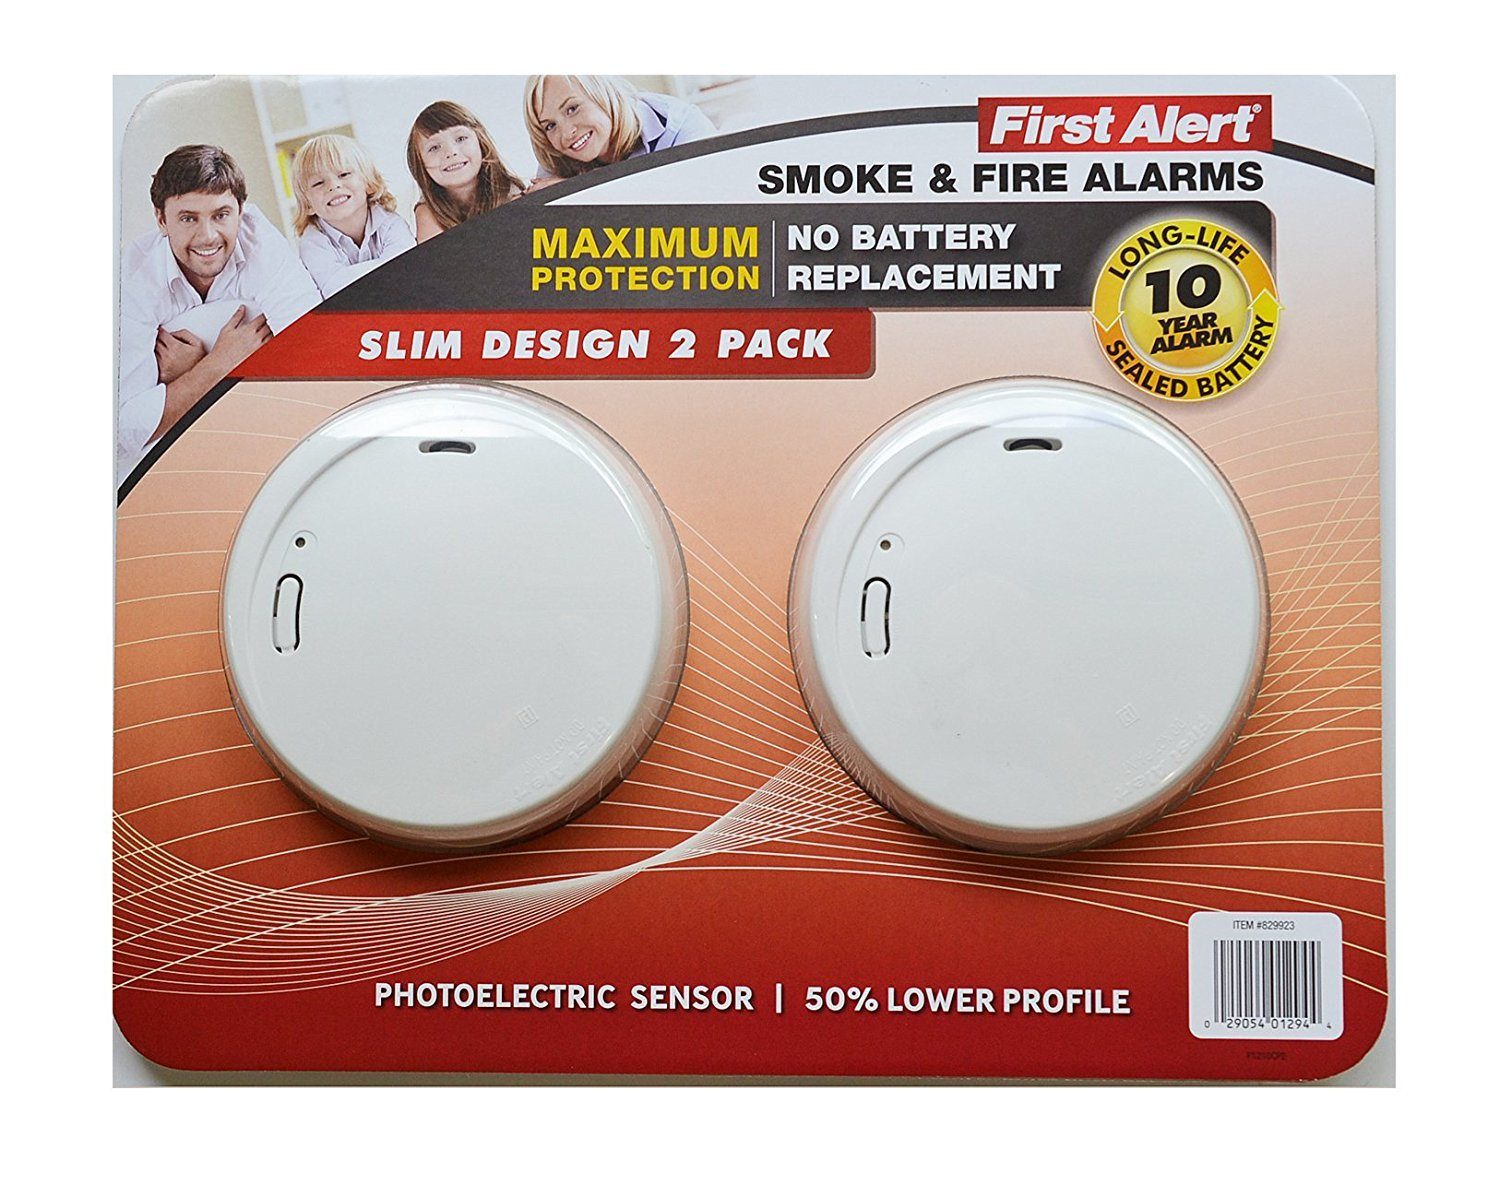 First Alert Smoke Fire Alarm Slim Design 2 pack 10 year long life sealed battery